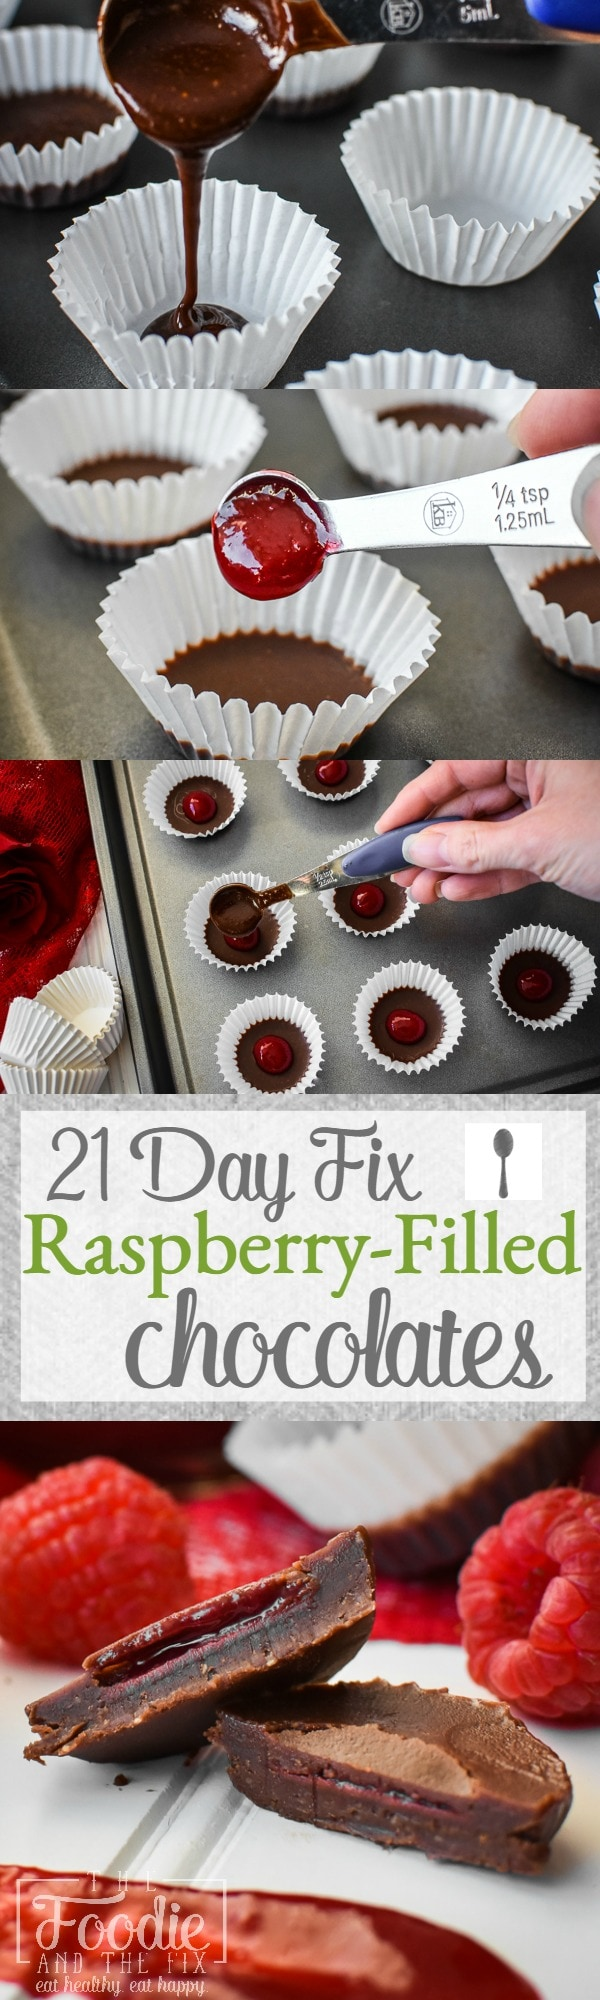 These delicious raspberry-filled chocolates are the perfect sweet treat for Valentine's Day! Counts as 1 teaspoon on the 21 Day Fix! Gluten free, vegan.